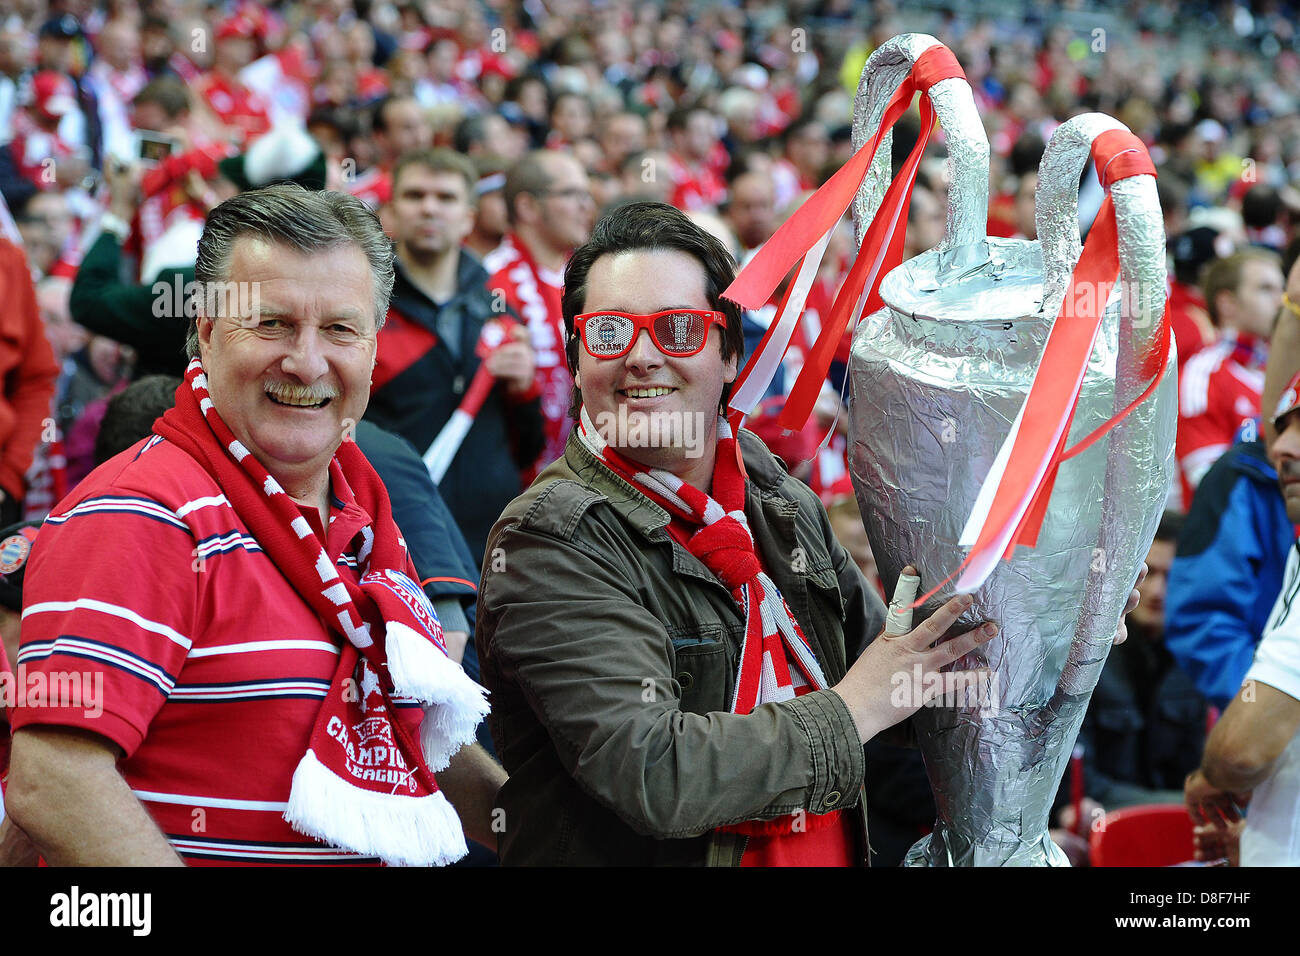 Fans of Bayern Munich hold a replicated Champions League trophy in their hands during the Champions League finals - Stock Image